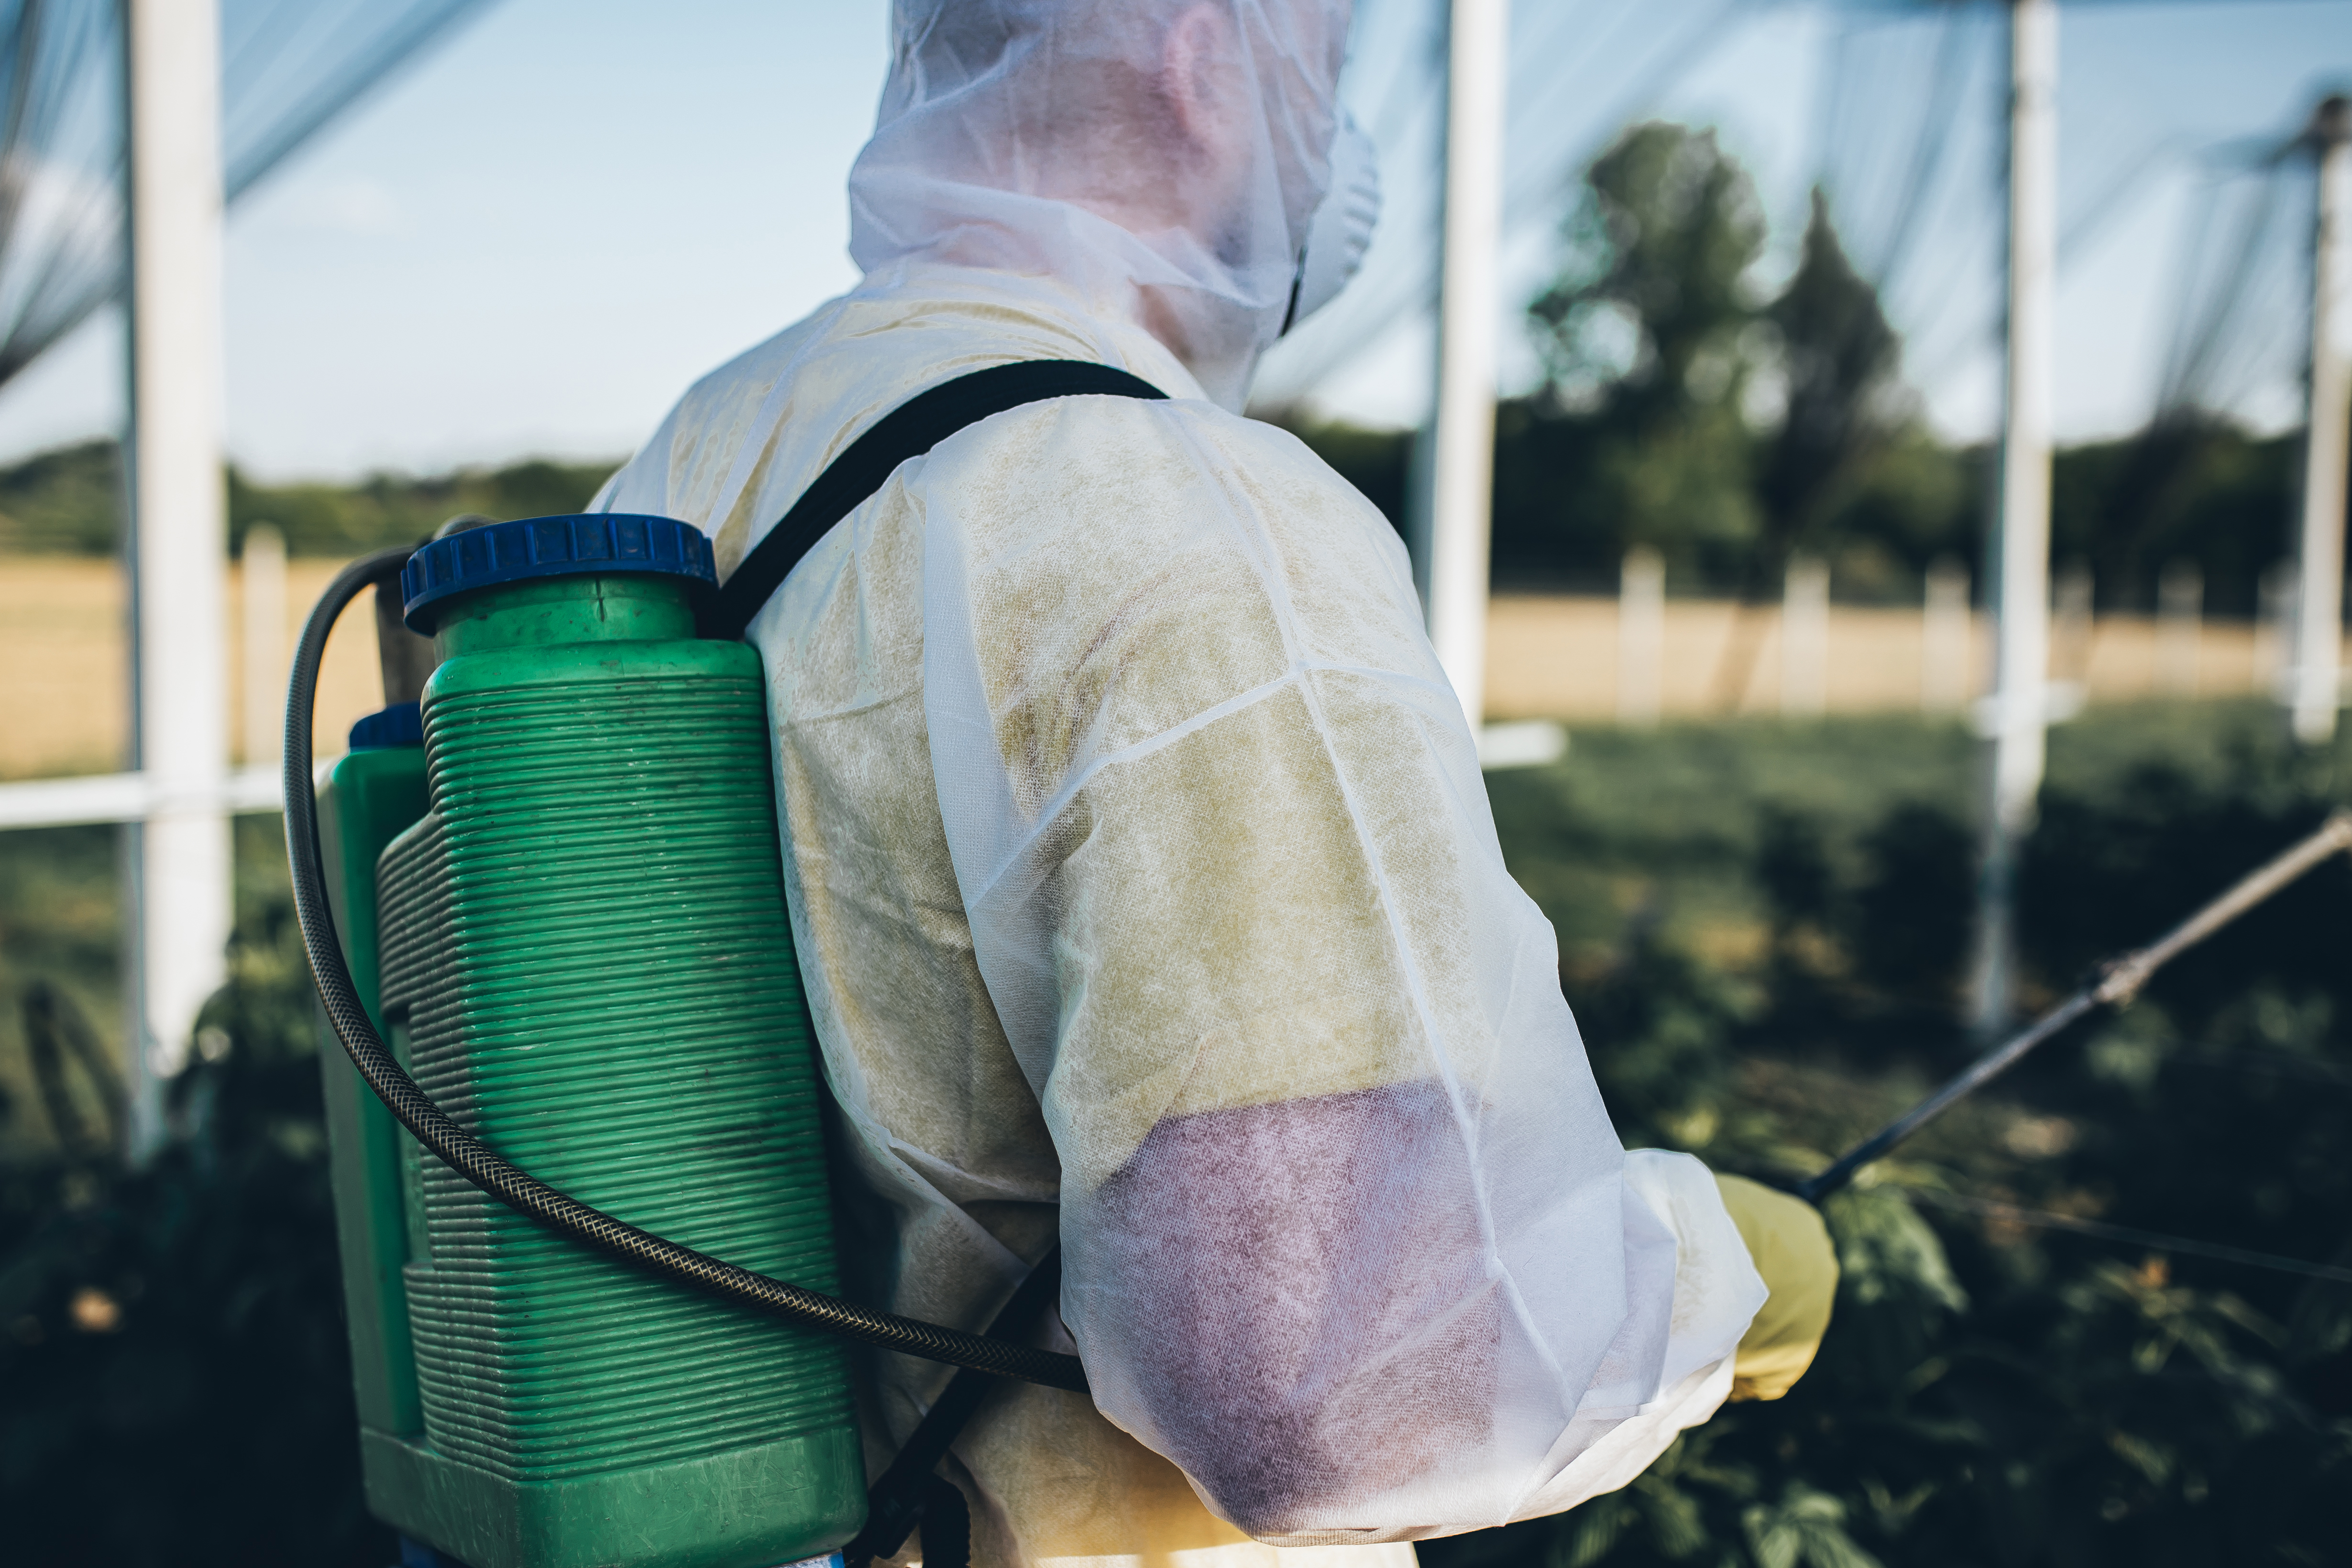 Can I Use Roundup on Wet Weeds? | Home Guides | SF Gate